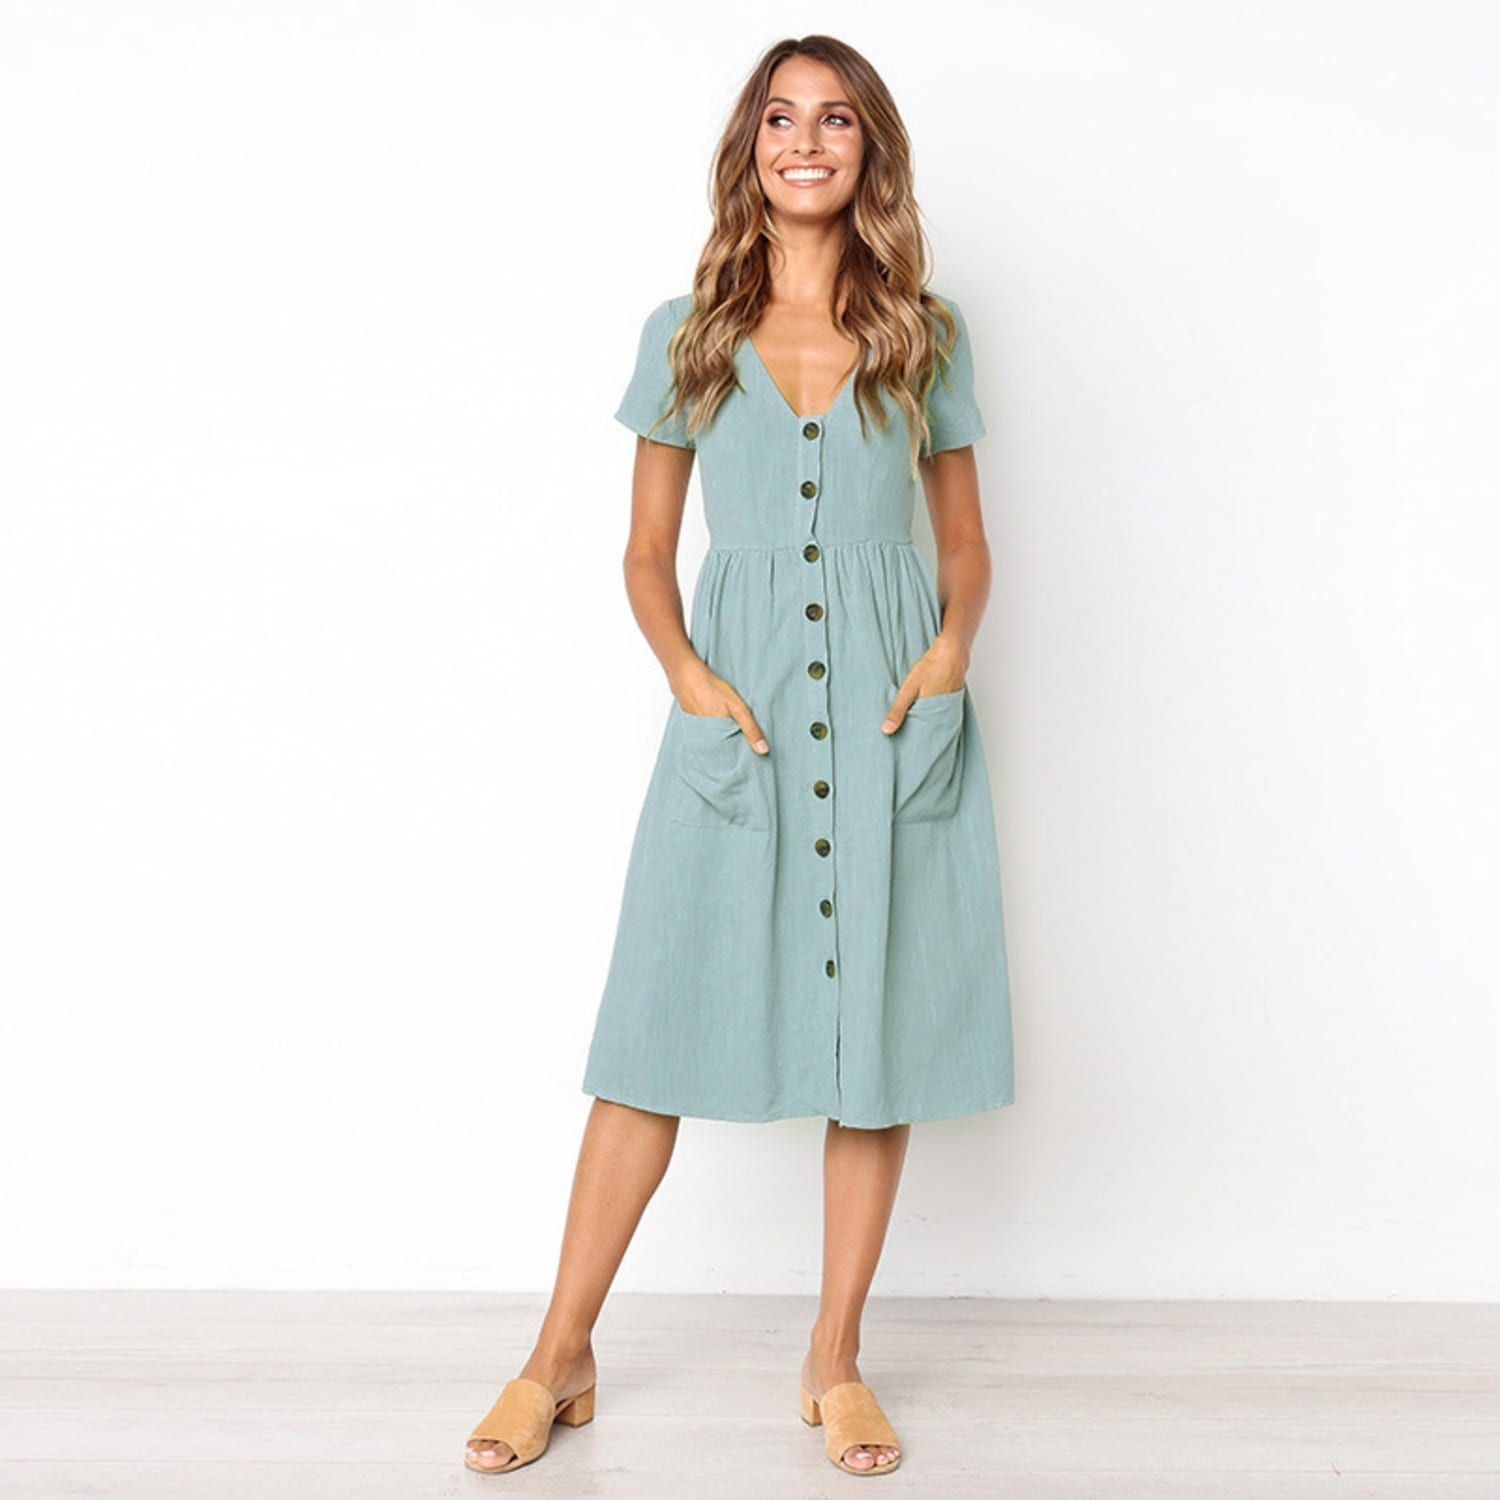 Buttoned V Neck Dress With Pockets Short Sleeve Summer Dresses Casual Summer Dresses Summer Dresses For Women [ 1500 x 1500 Pixel ]